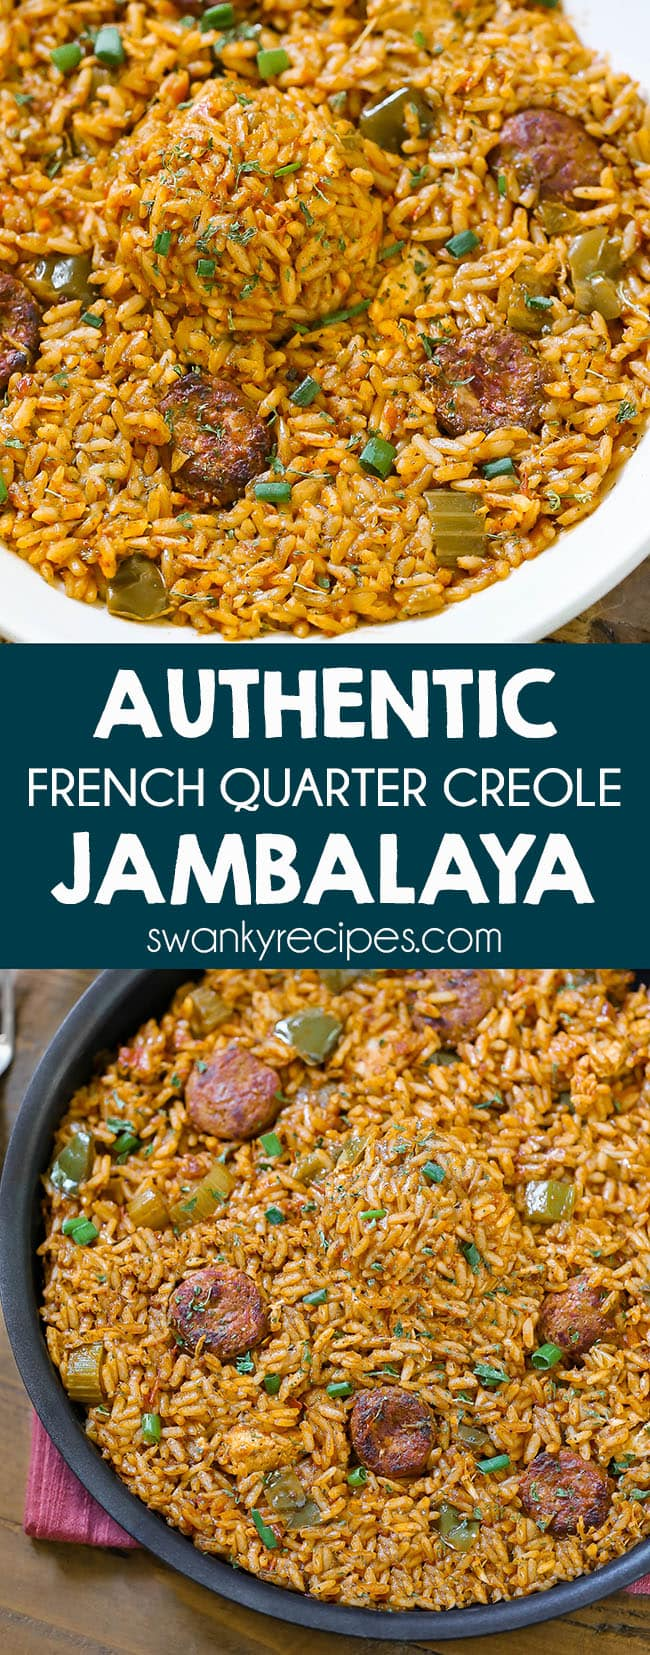 Creole Jambalaya - A taste of the French Quarter. Authentic New Orleans Jambalaya made with Andouille sausage, chicken, tomatoes, Creole seasoning, and rice. This jambalaya recipe is authentic and the real deal from a local in New Orleans. Do what the locals do and serve this with red beans and rice or cornbread.